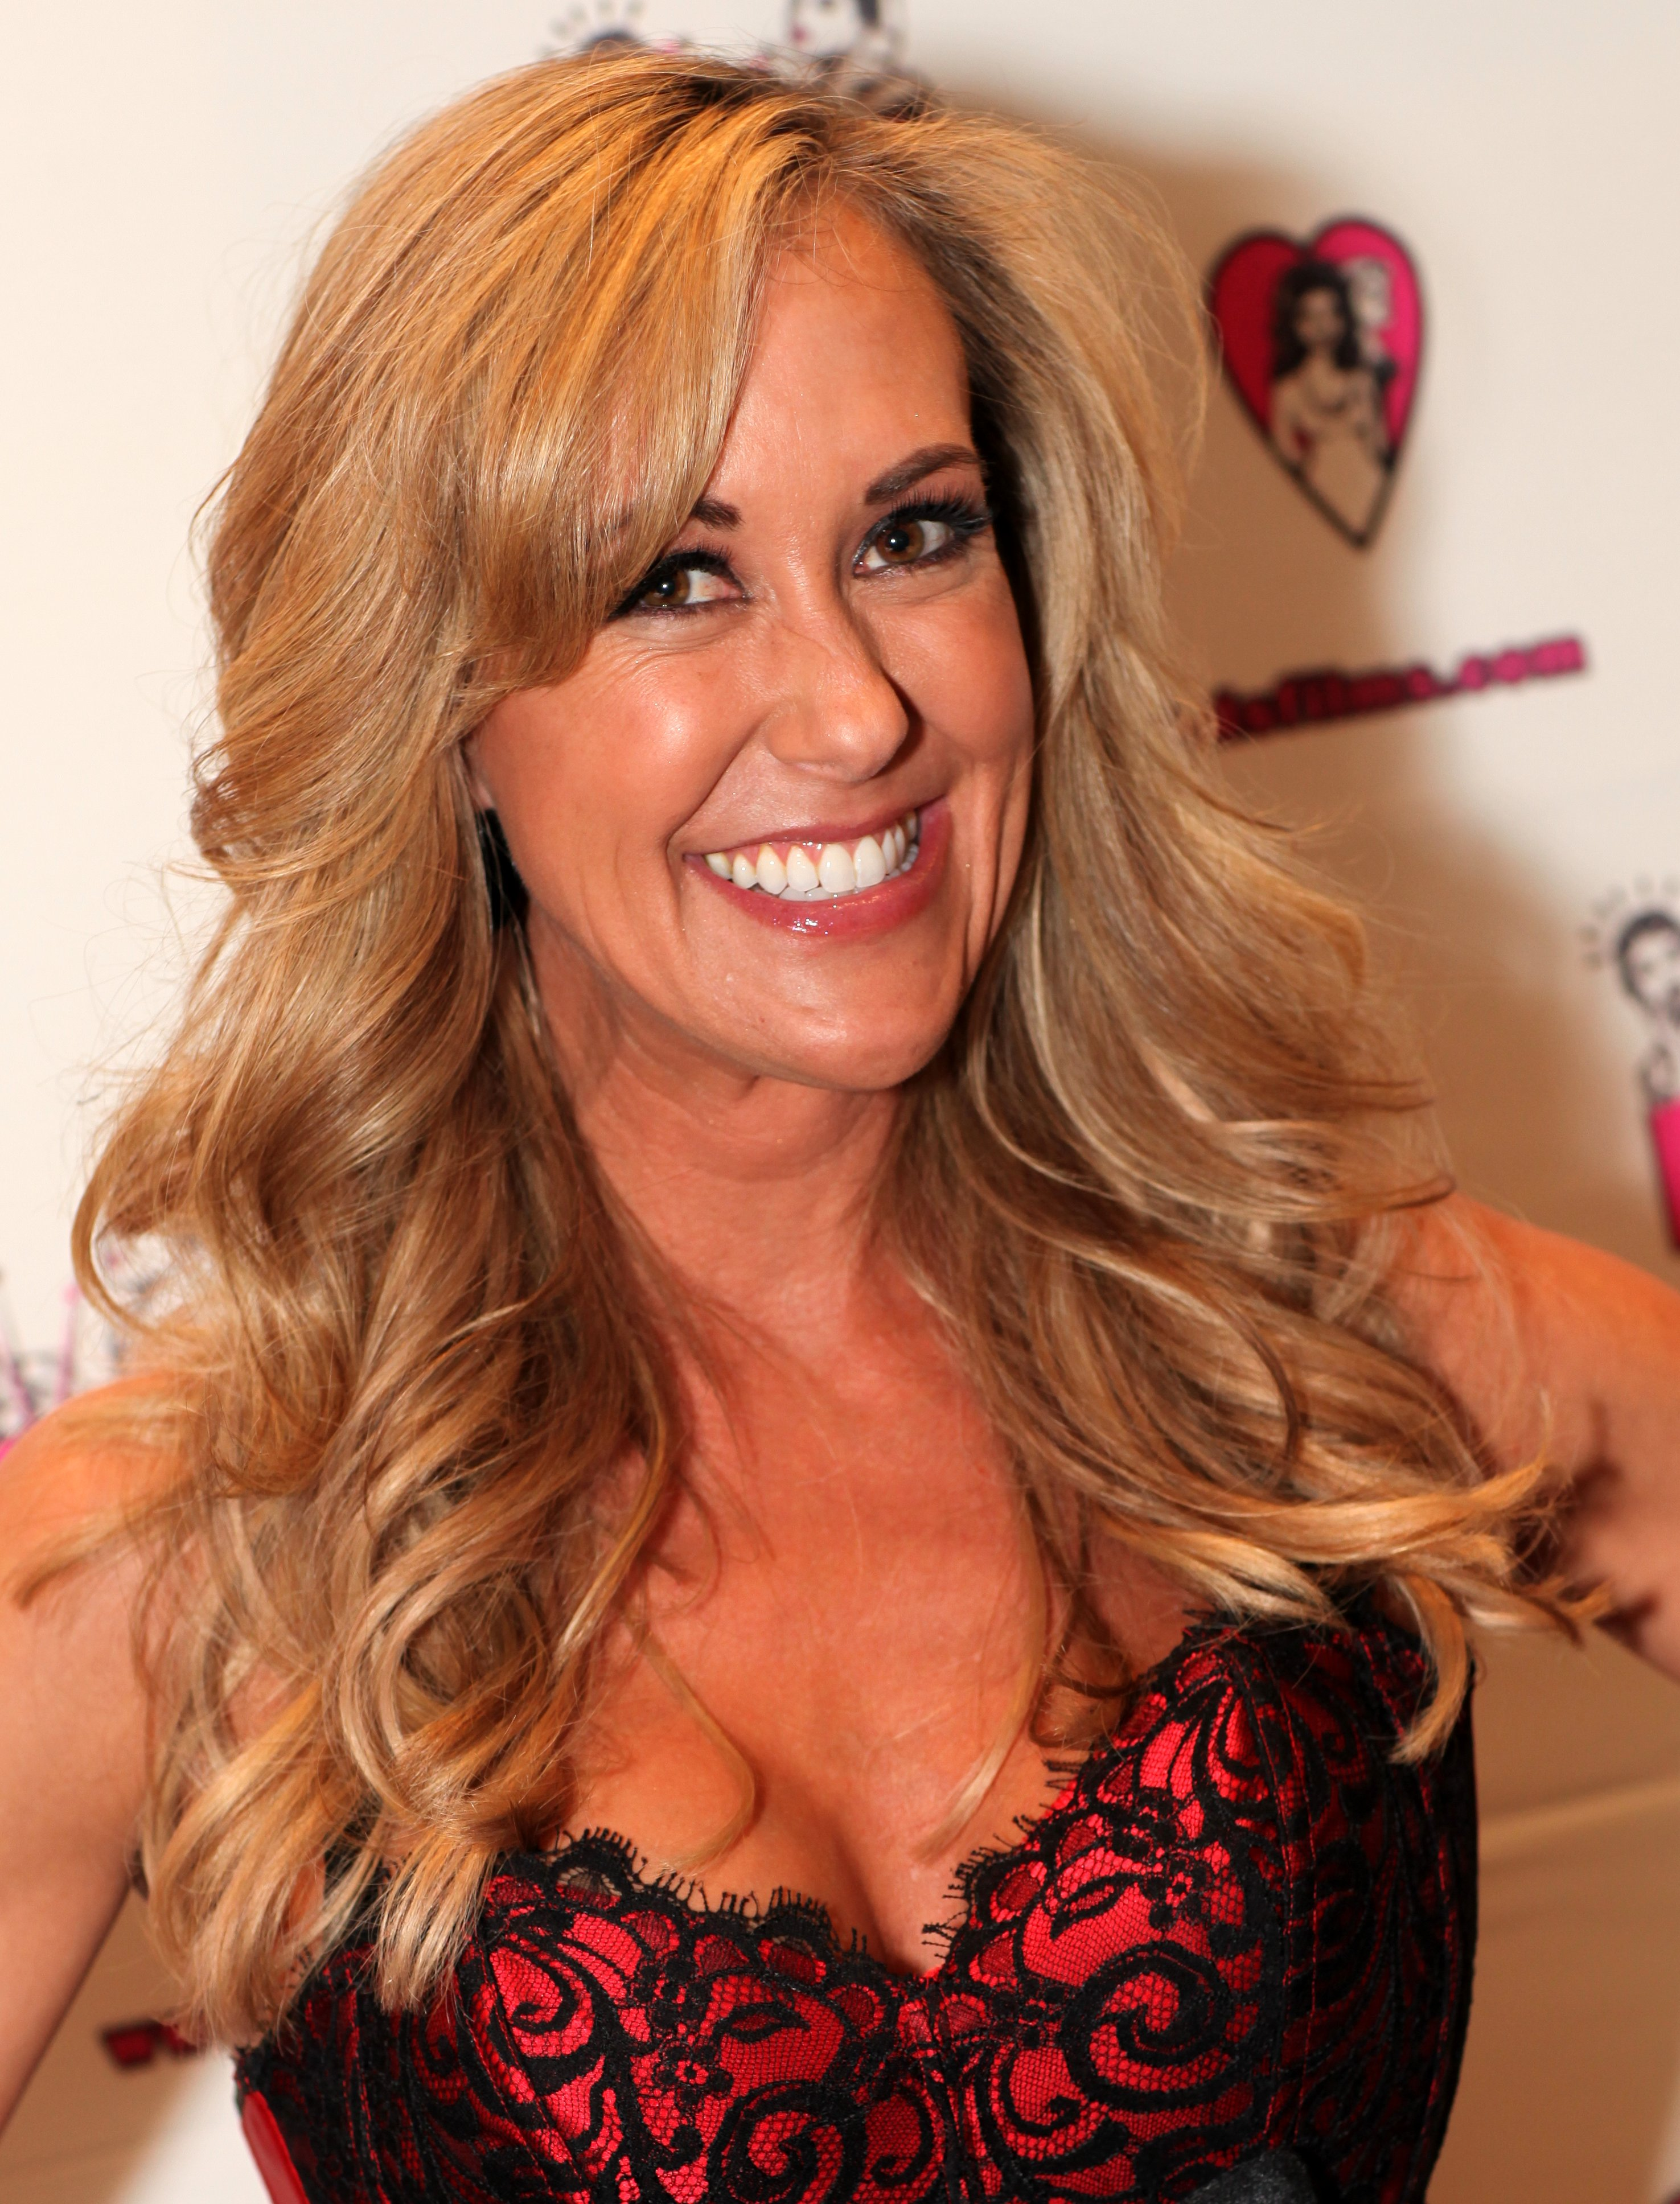 Brandi Love - Actresses & People Background Wallpapers on Desktop Nexus  (Image 2449067) | 3872x2951